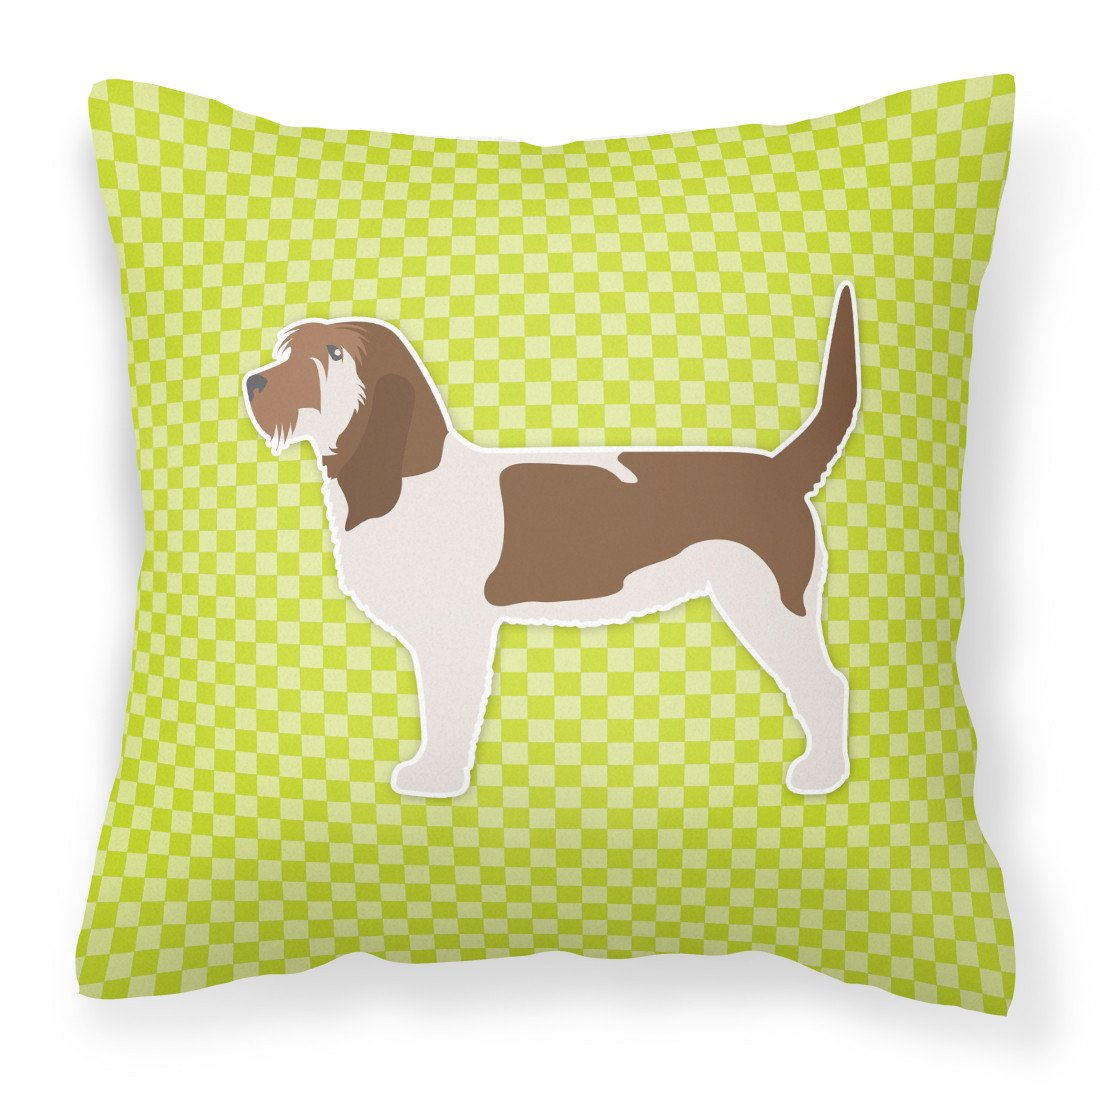 Grand Basset Griffon Vendeen Checkerboard Green Fabric Decorative Pillow BB3790PW1818 by Caroline's Treasures